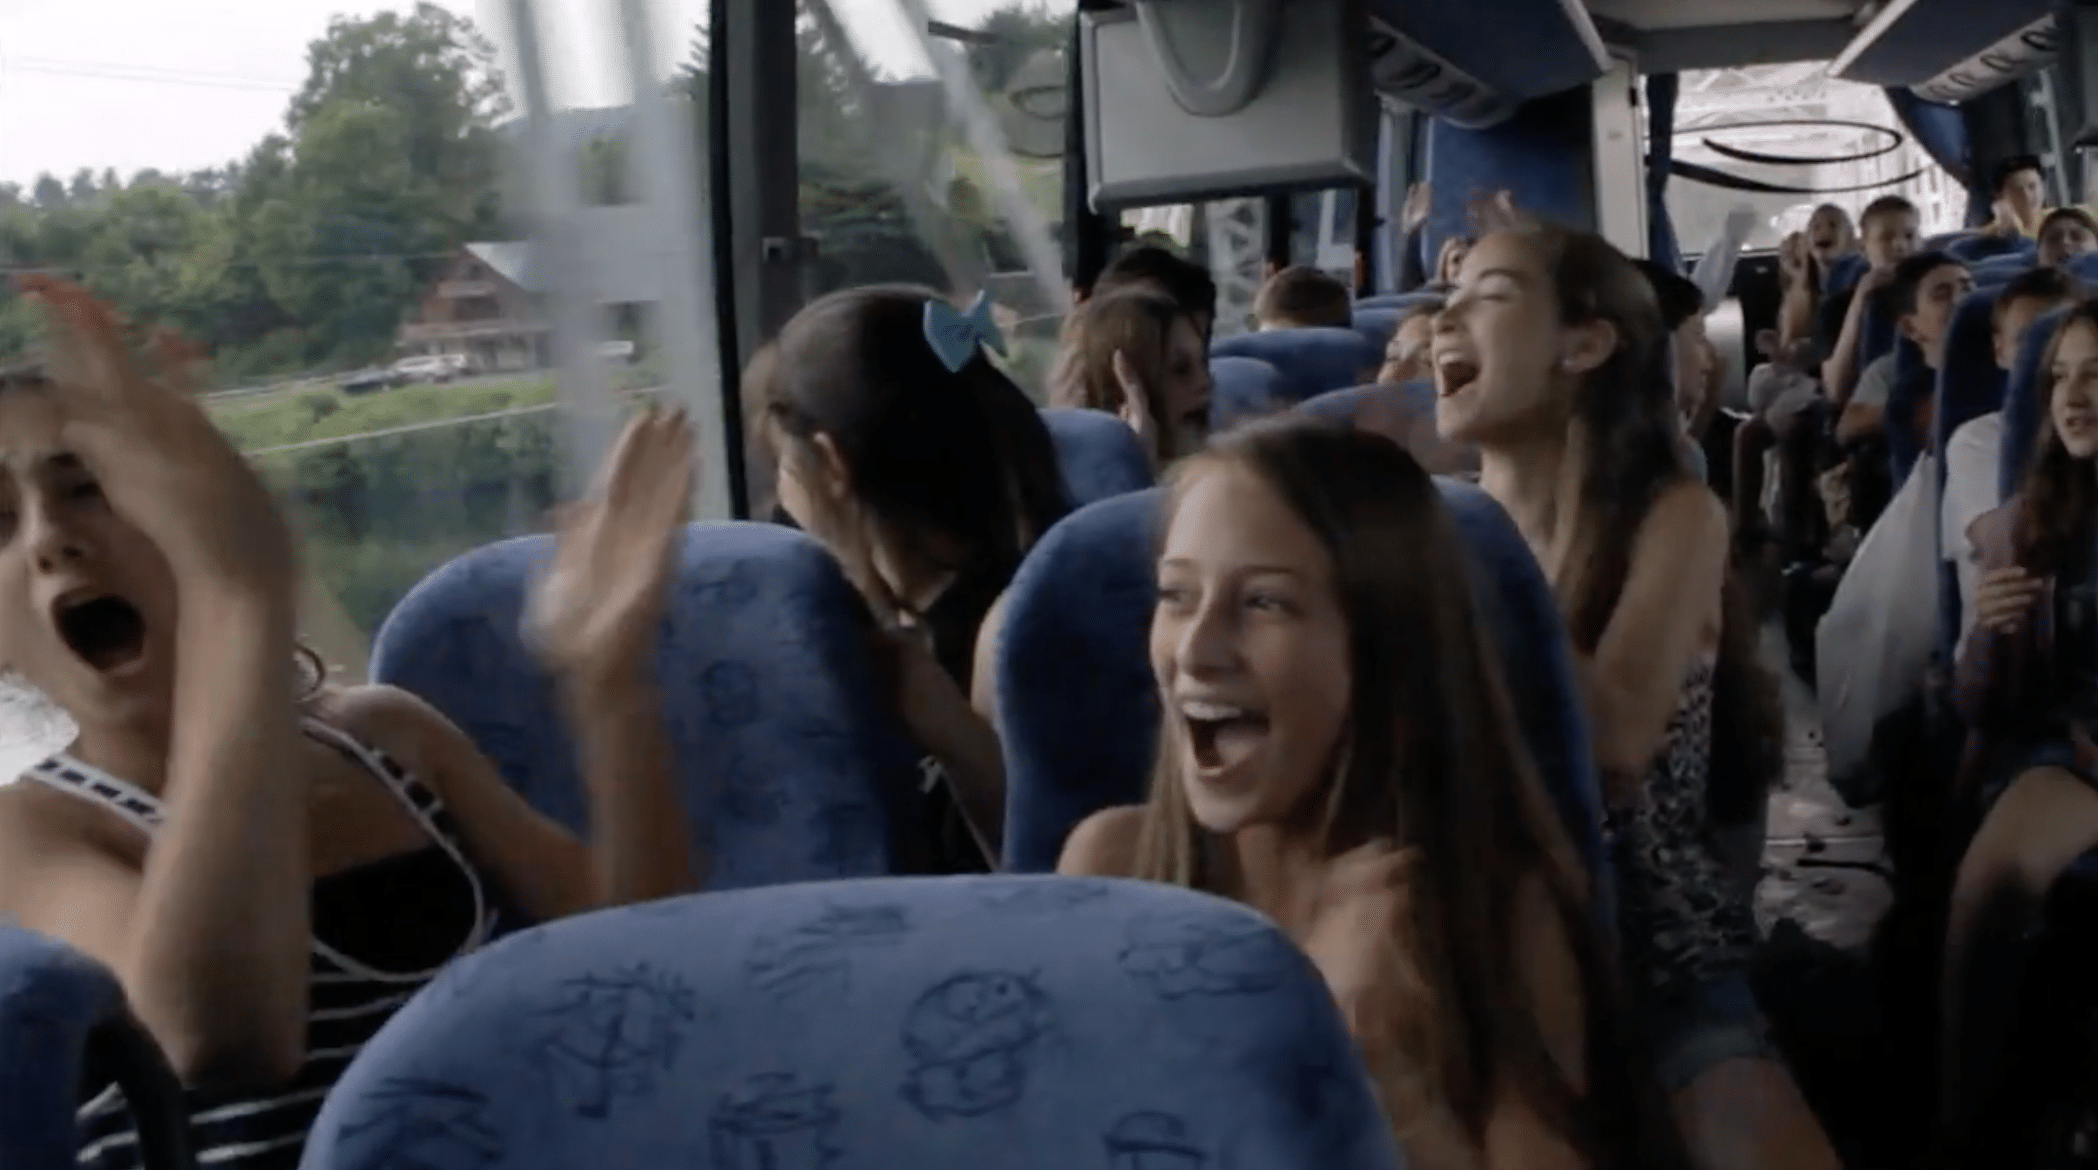 a bus full of happy girl screaming